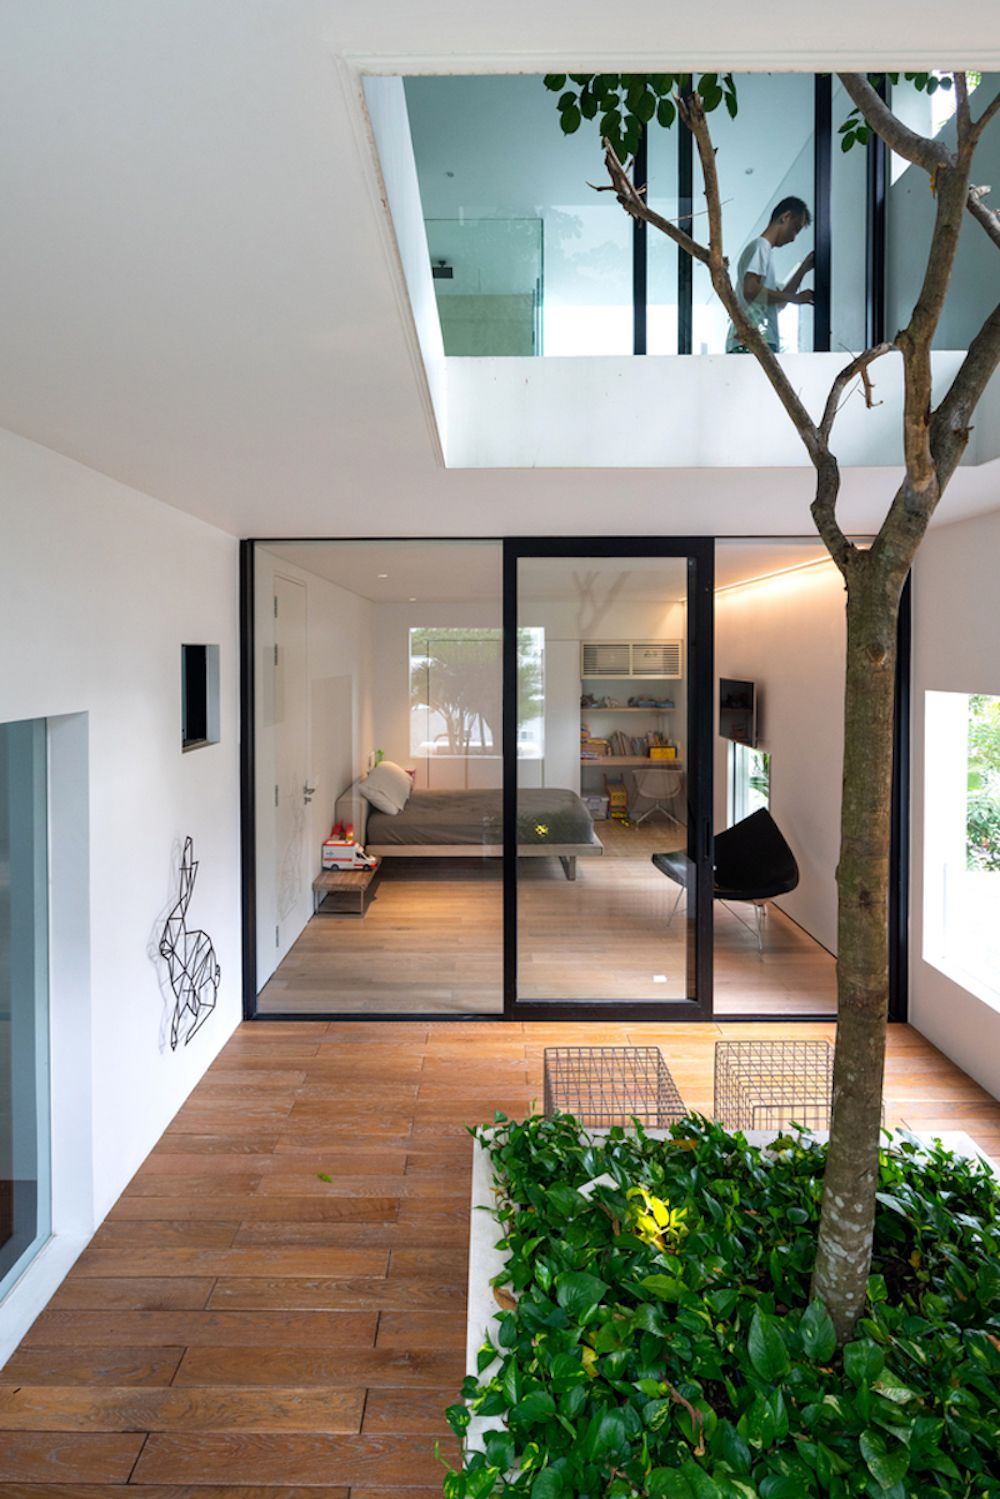 Living area with interior tree and glass wall.